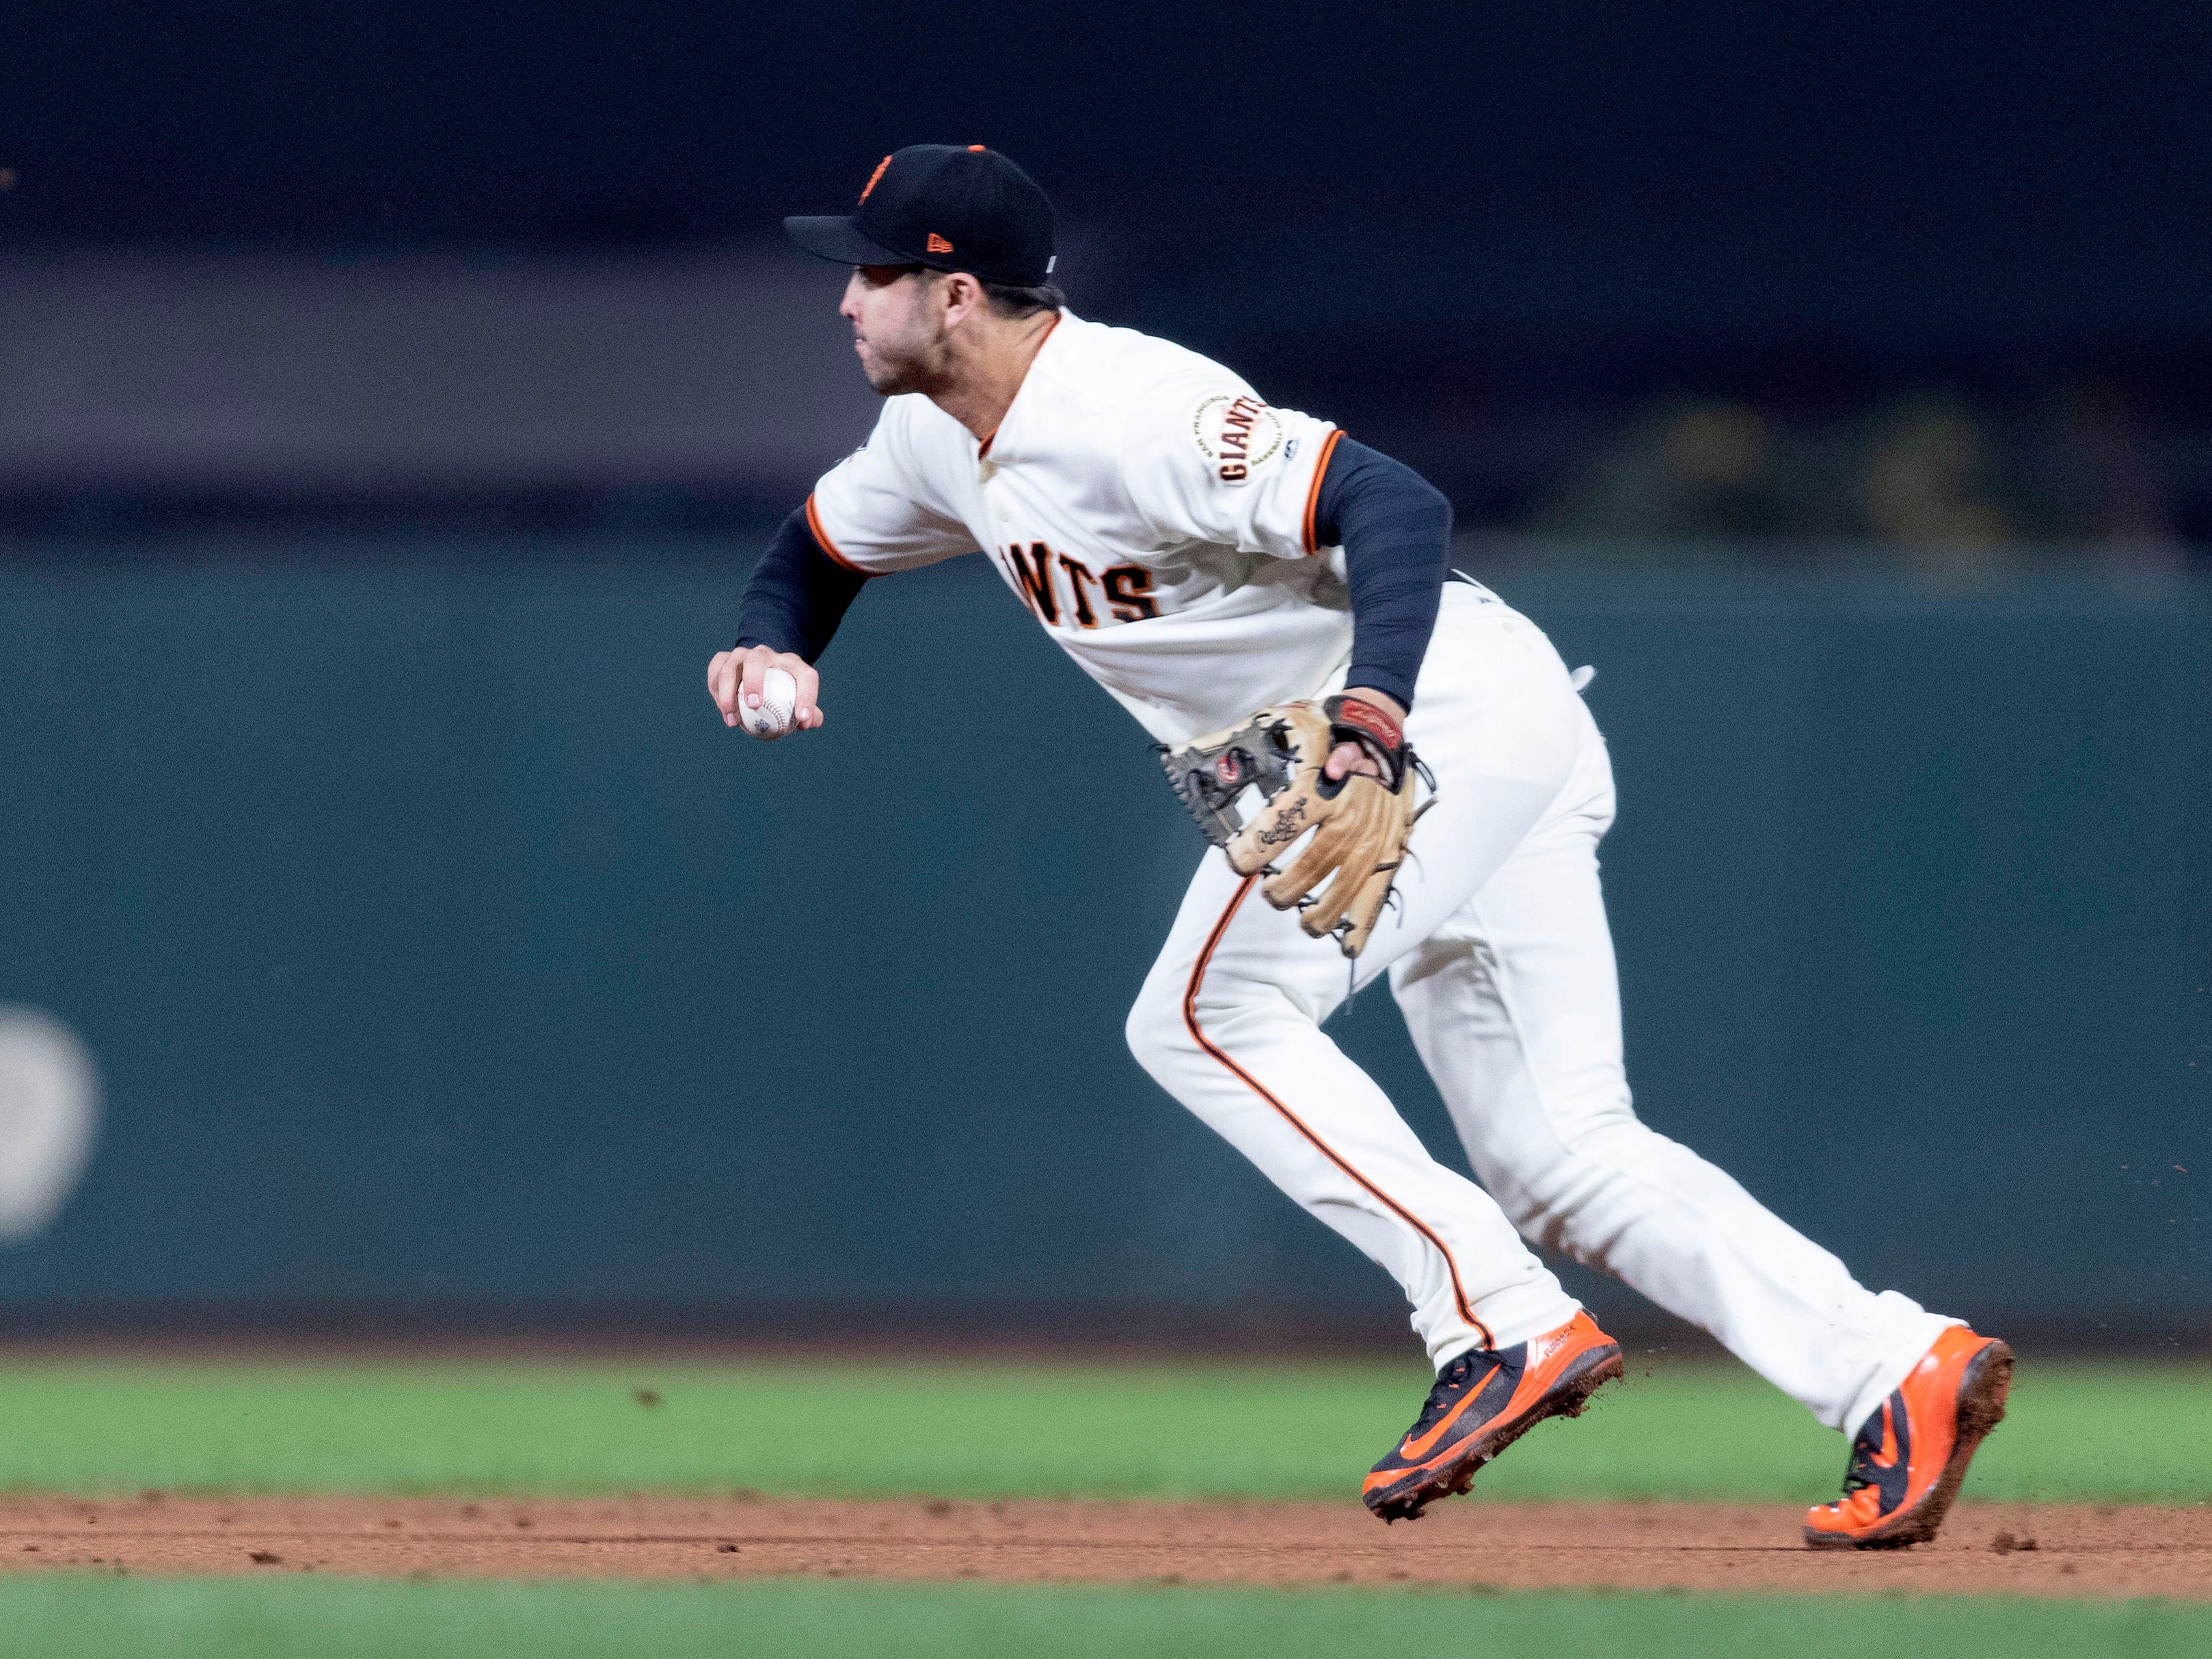 Aug 27, 2018; San Francisco, CA, USA; San Francisco Giants second baseman Chase d'Arnaud (2) throws out Arizona Diamondbacks center fielder Jon Jay (not pictured) during the third inning at AT&T Park. Mandatory Credit: Neville E. Guard-USA TODAY Sports